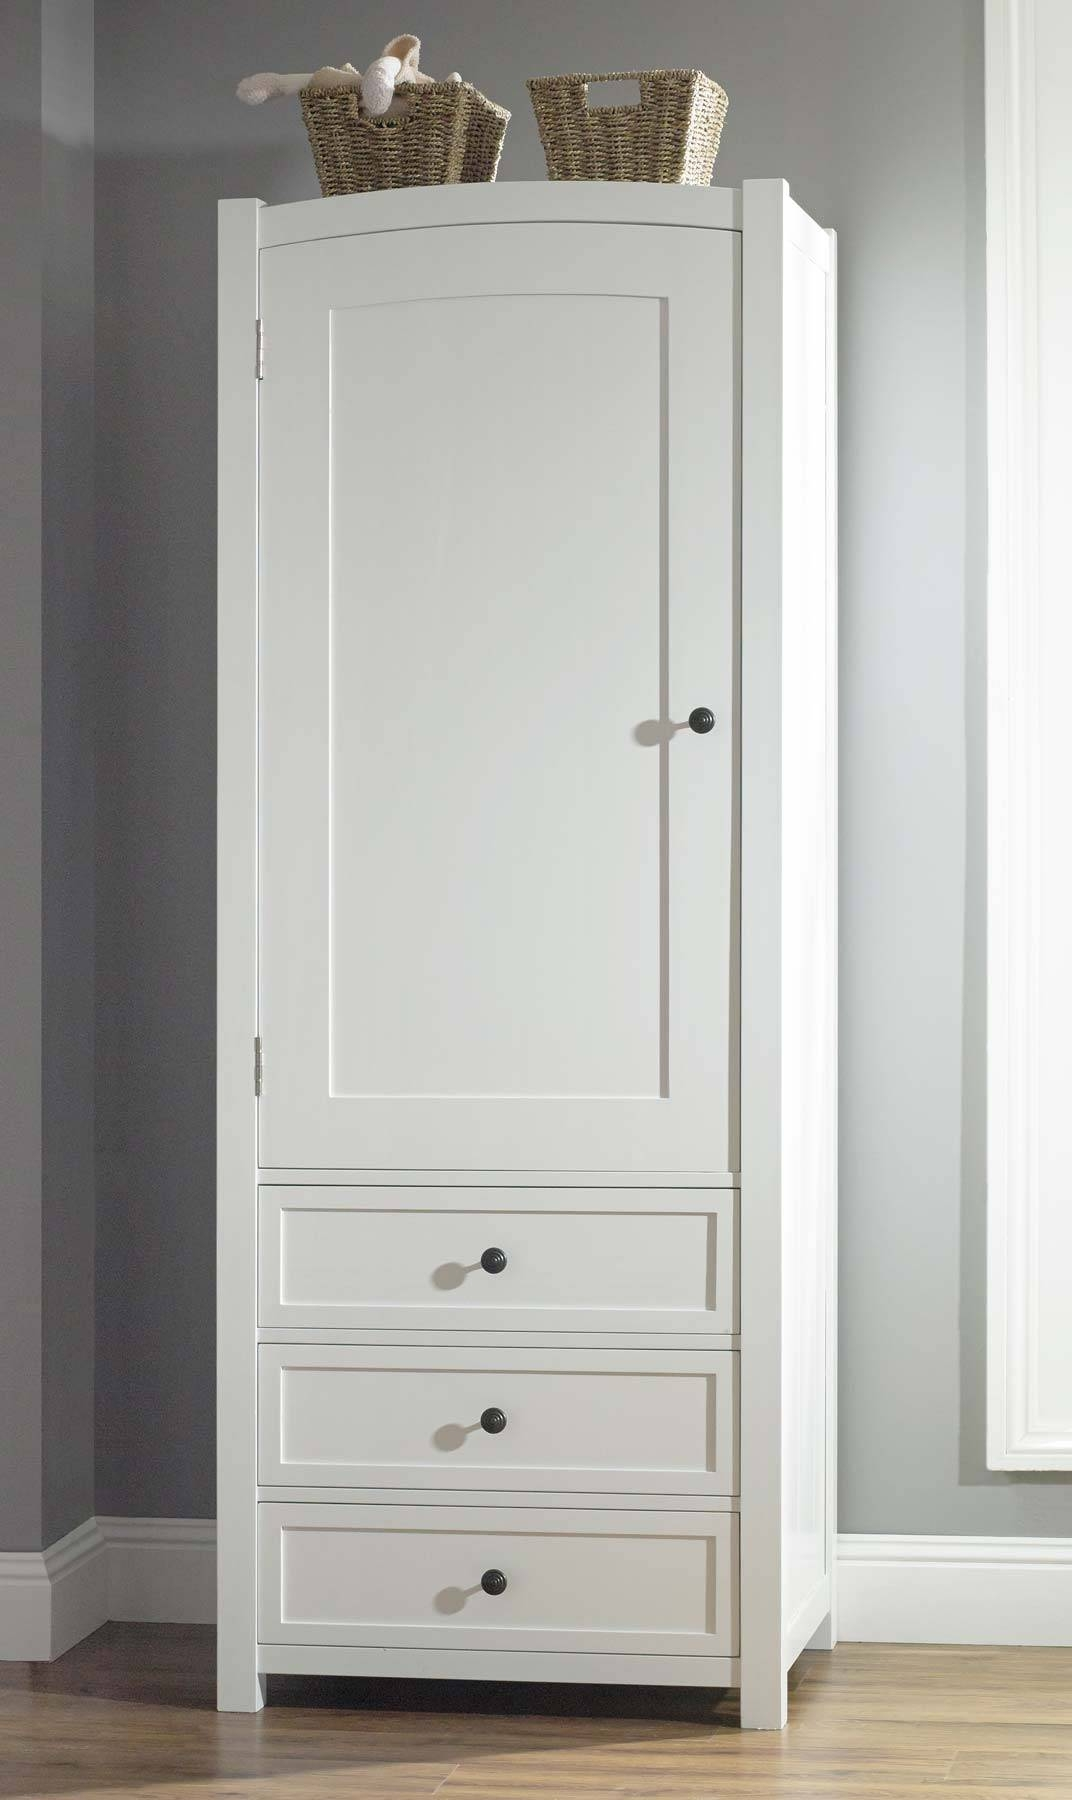 2019 Best Of Single White Wardrobes